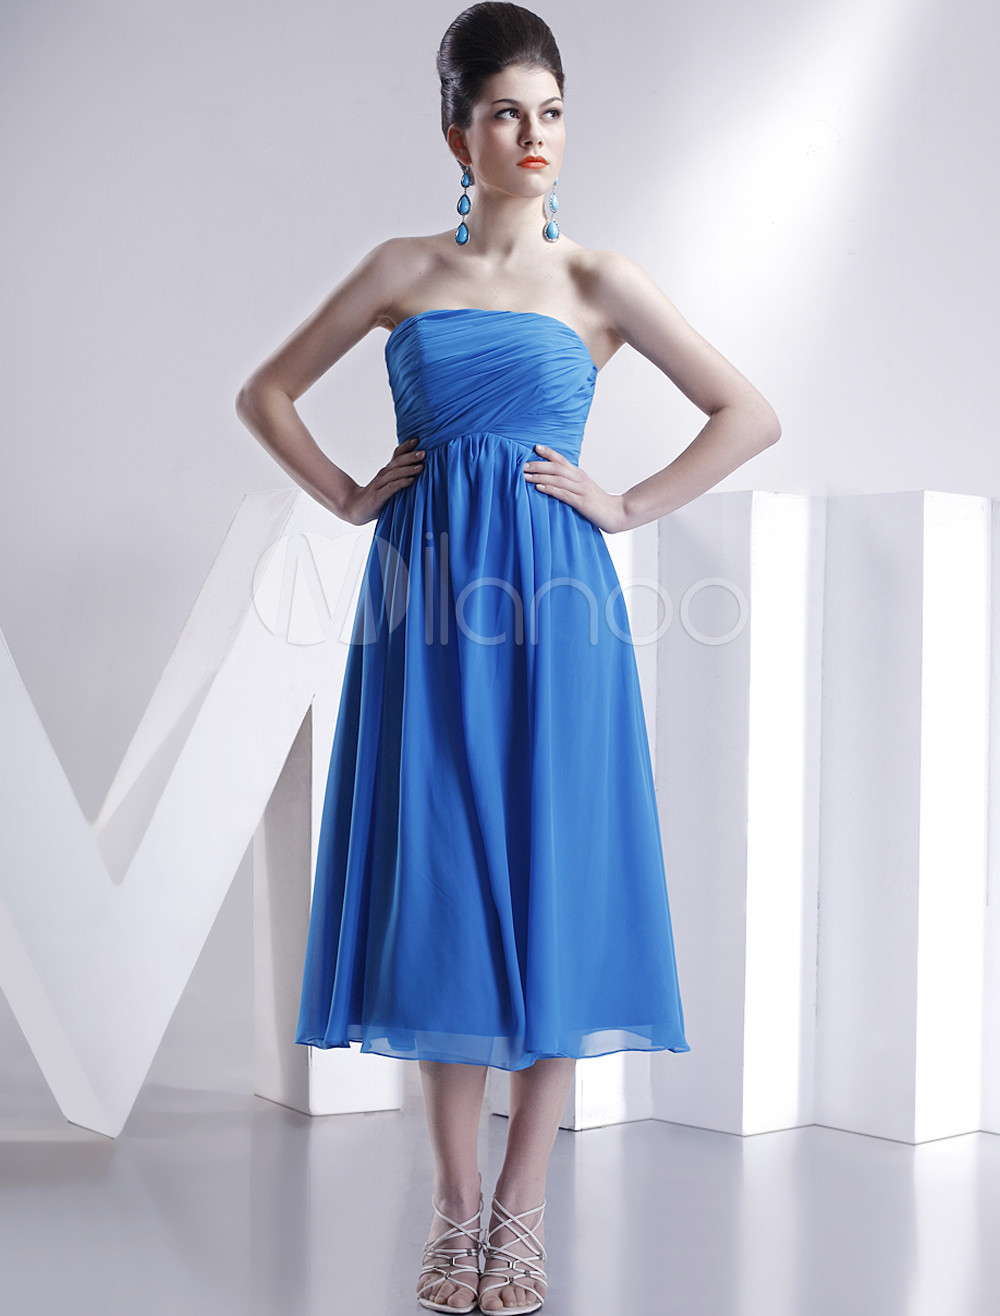 Royal Blue Strapless Empire Waist Satin Chiffon Summer Bridesmaid Homecoming Dress